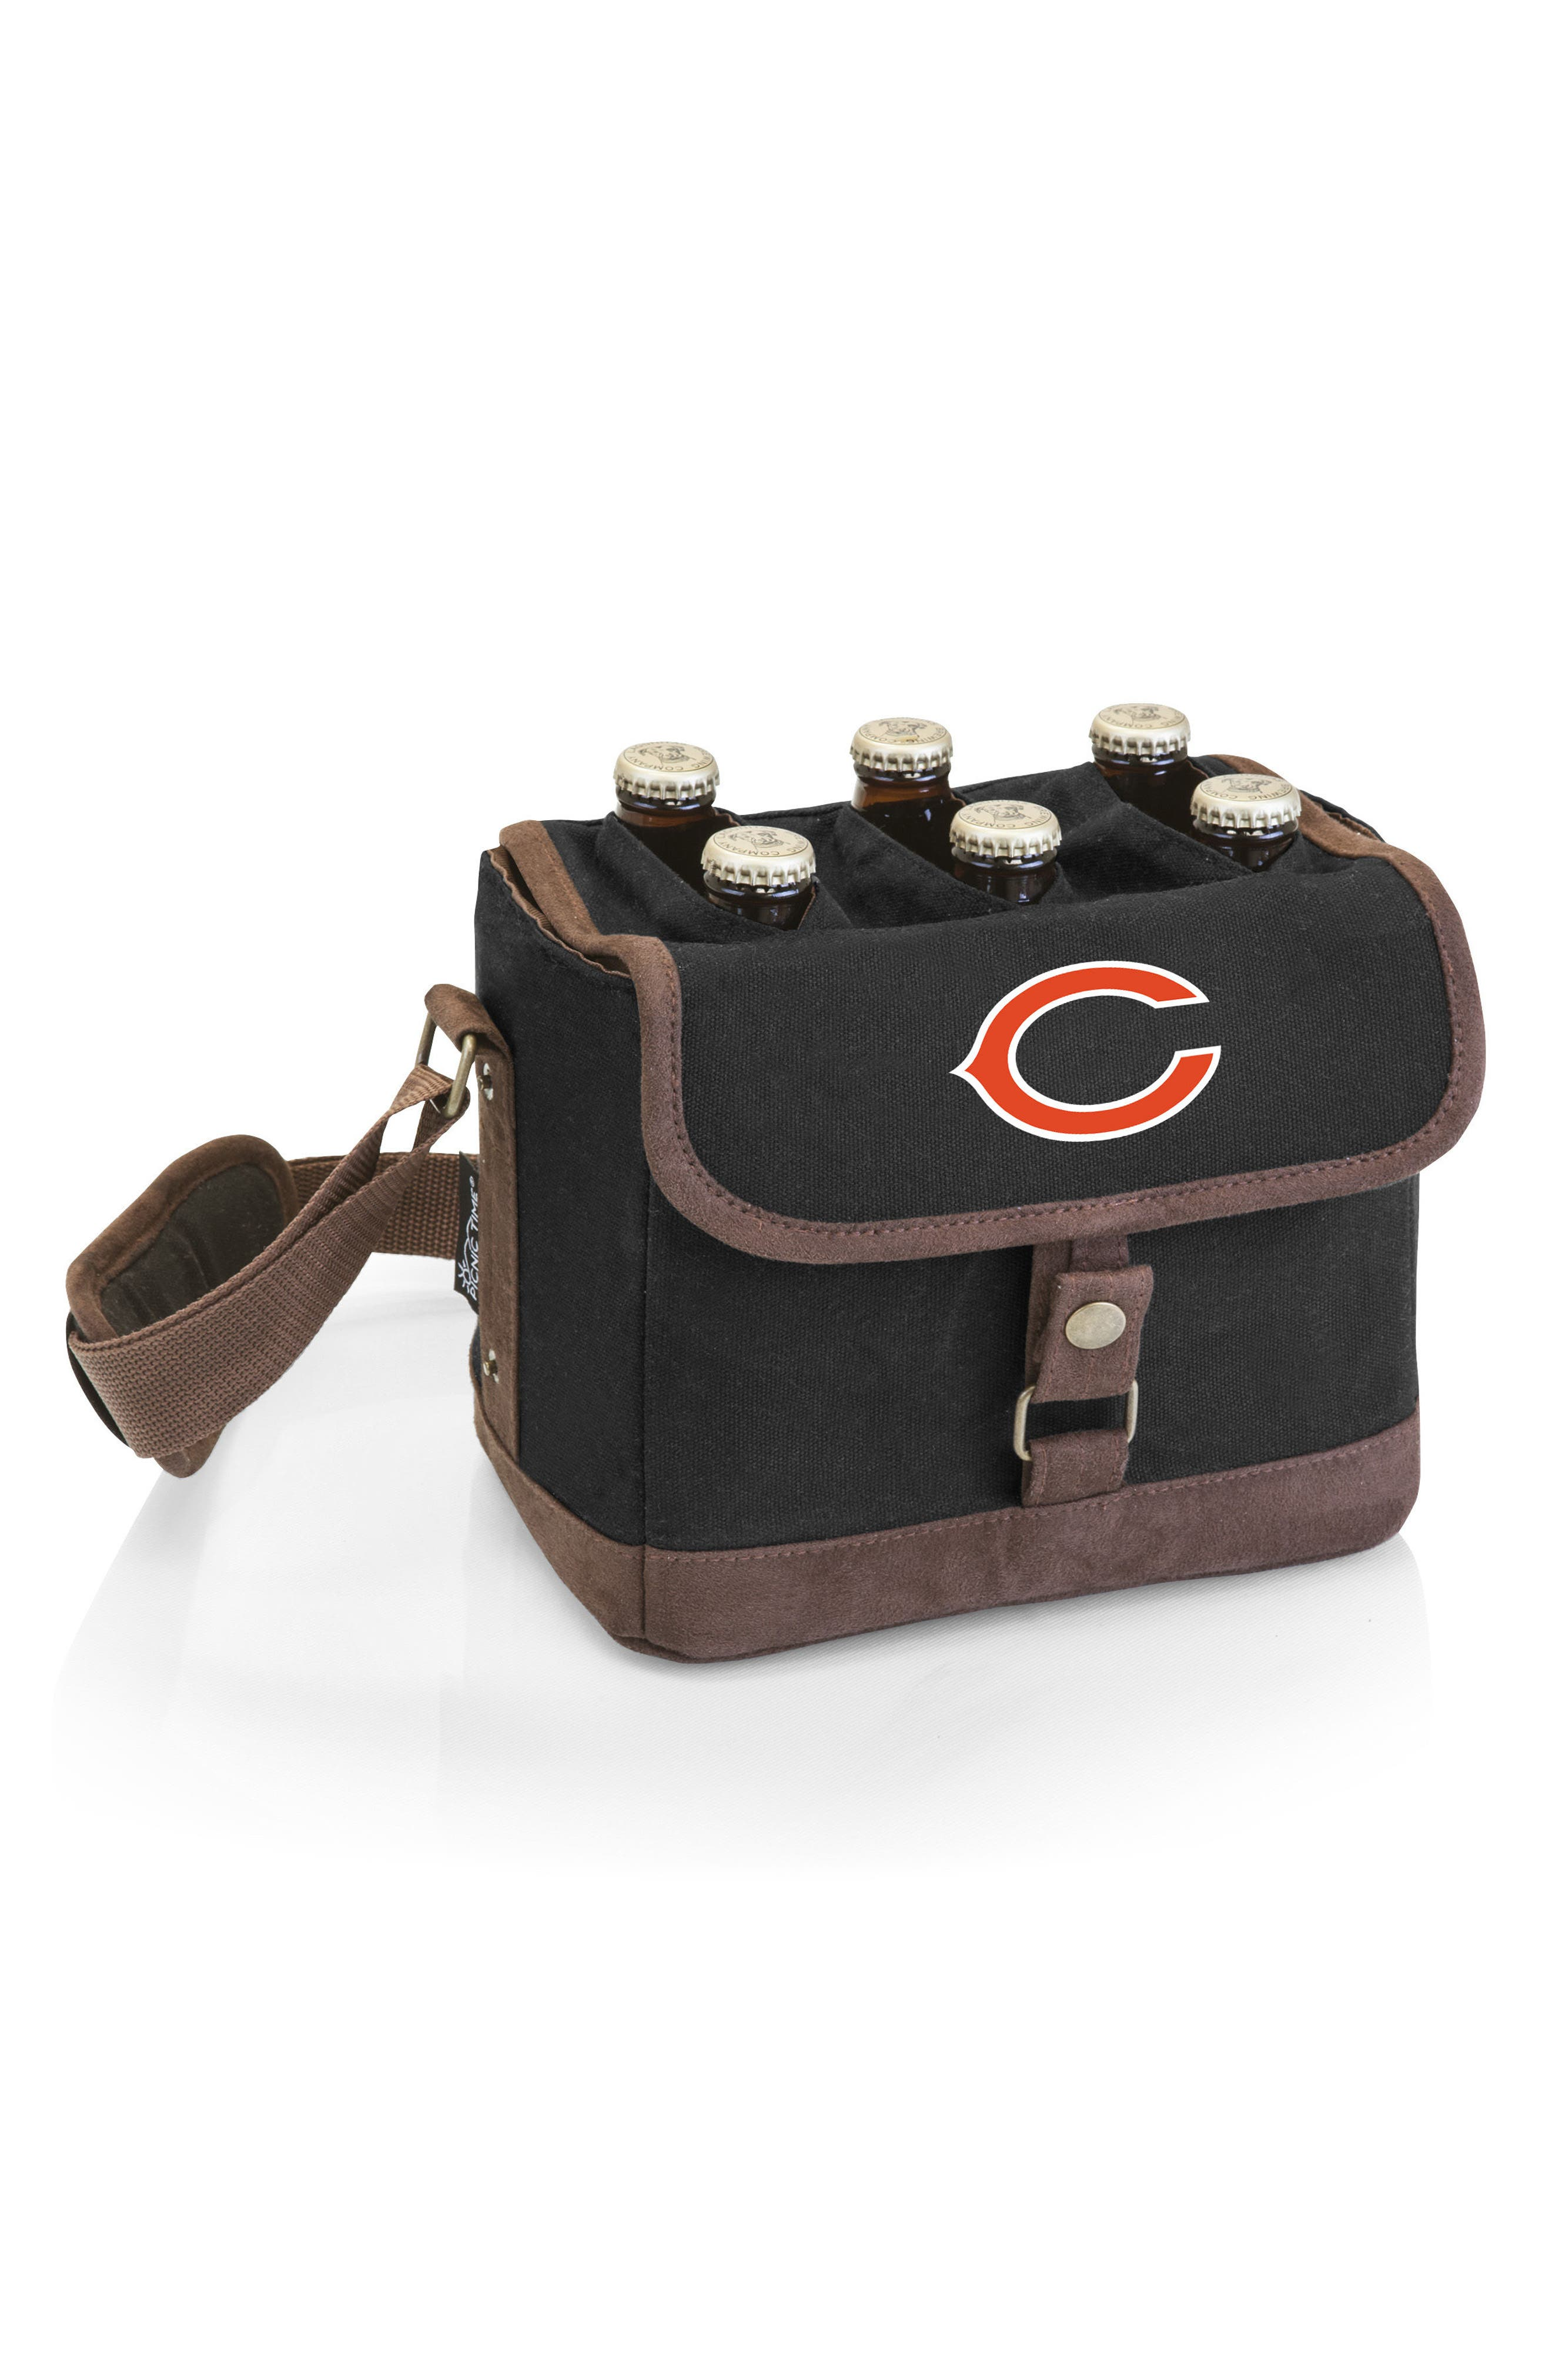 NFL Team Logo Beer Caddy Cooler Tote,                             Main thumbnail 1, color,                             Chicago Bears